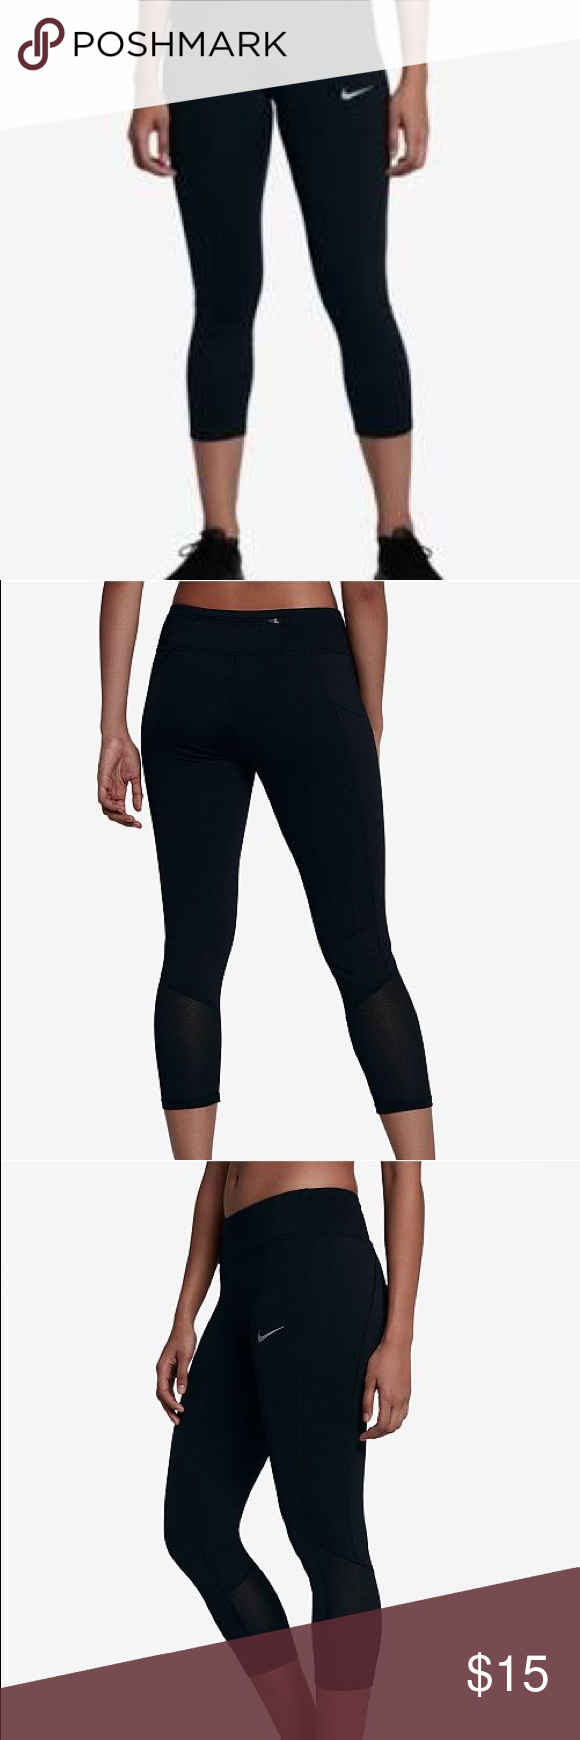 sports shoes 9b6ec 1d3f7 Racer Dri-FIT Cropped Running Leggings Worn, some fuzz that will require  some type of deep removal (dry cleaners) Nike Other